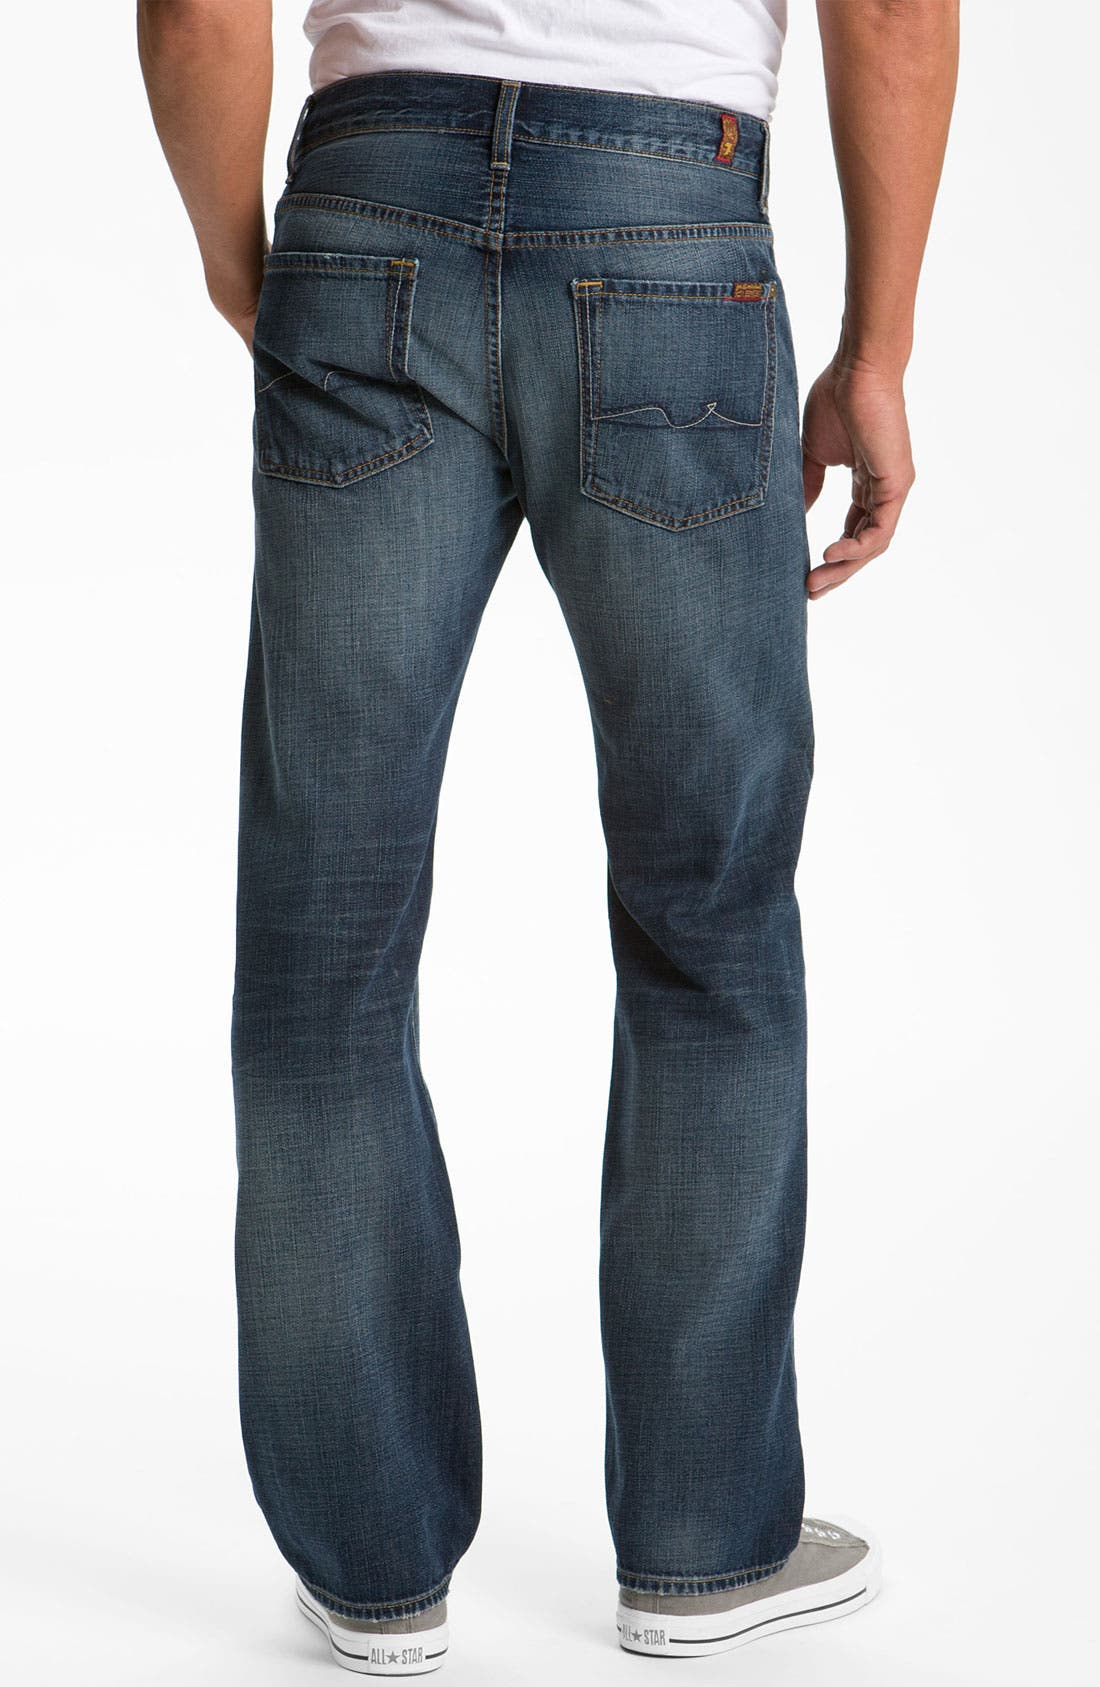 Alternate Image 1 Selected - 7 For All Mankind® 'Austyn' Relaxed Straight Leg Jeans (California Dusk)